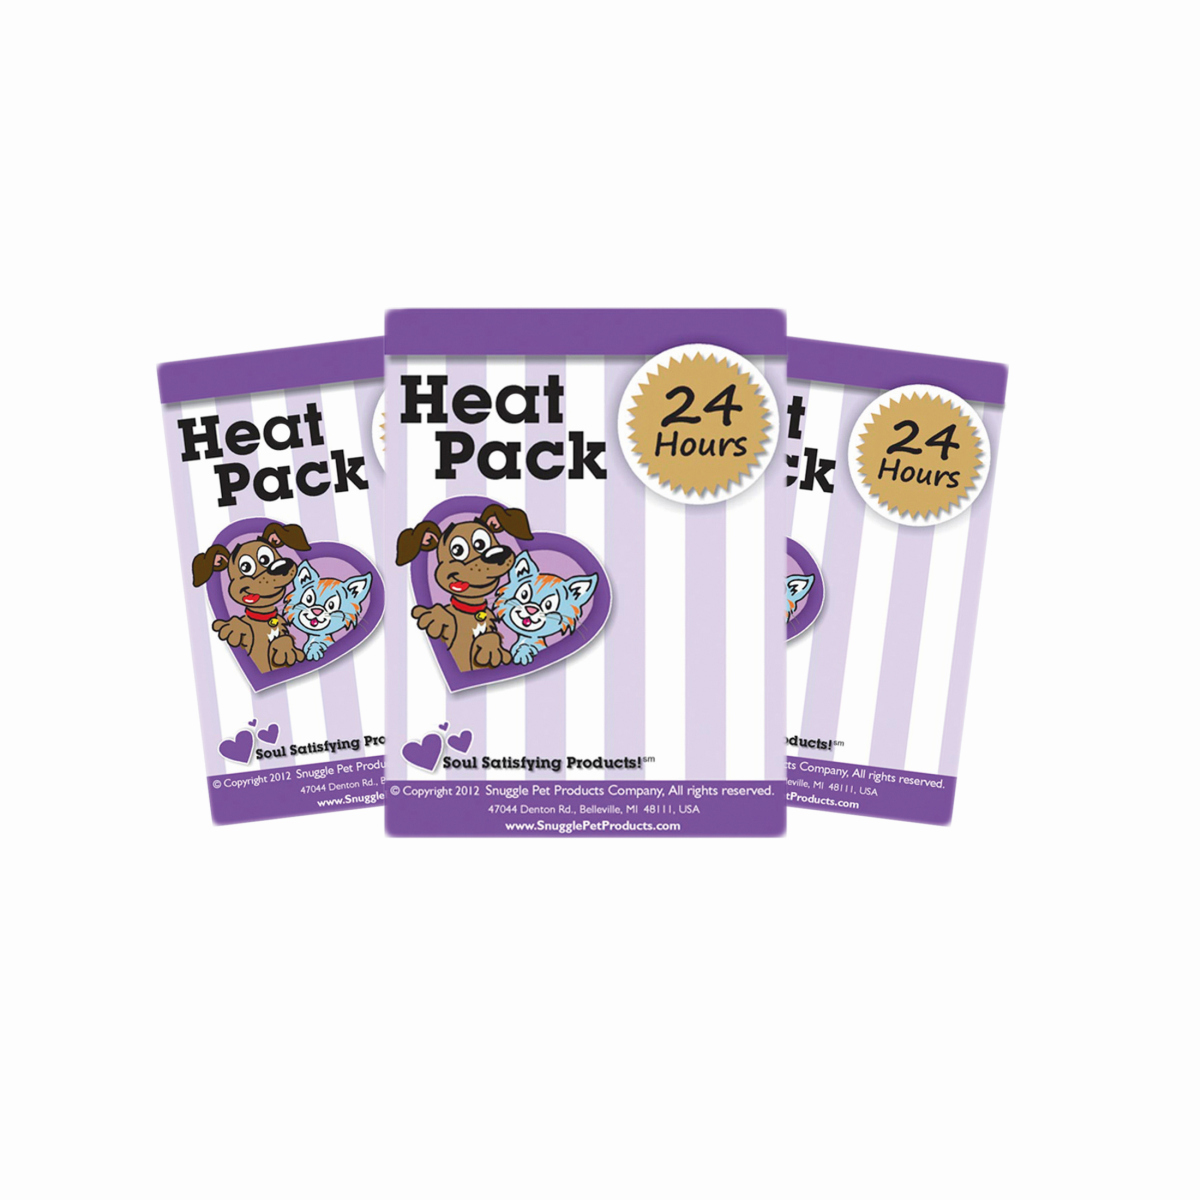 Snuggle puppy heat pack paars 3 st